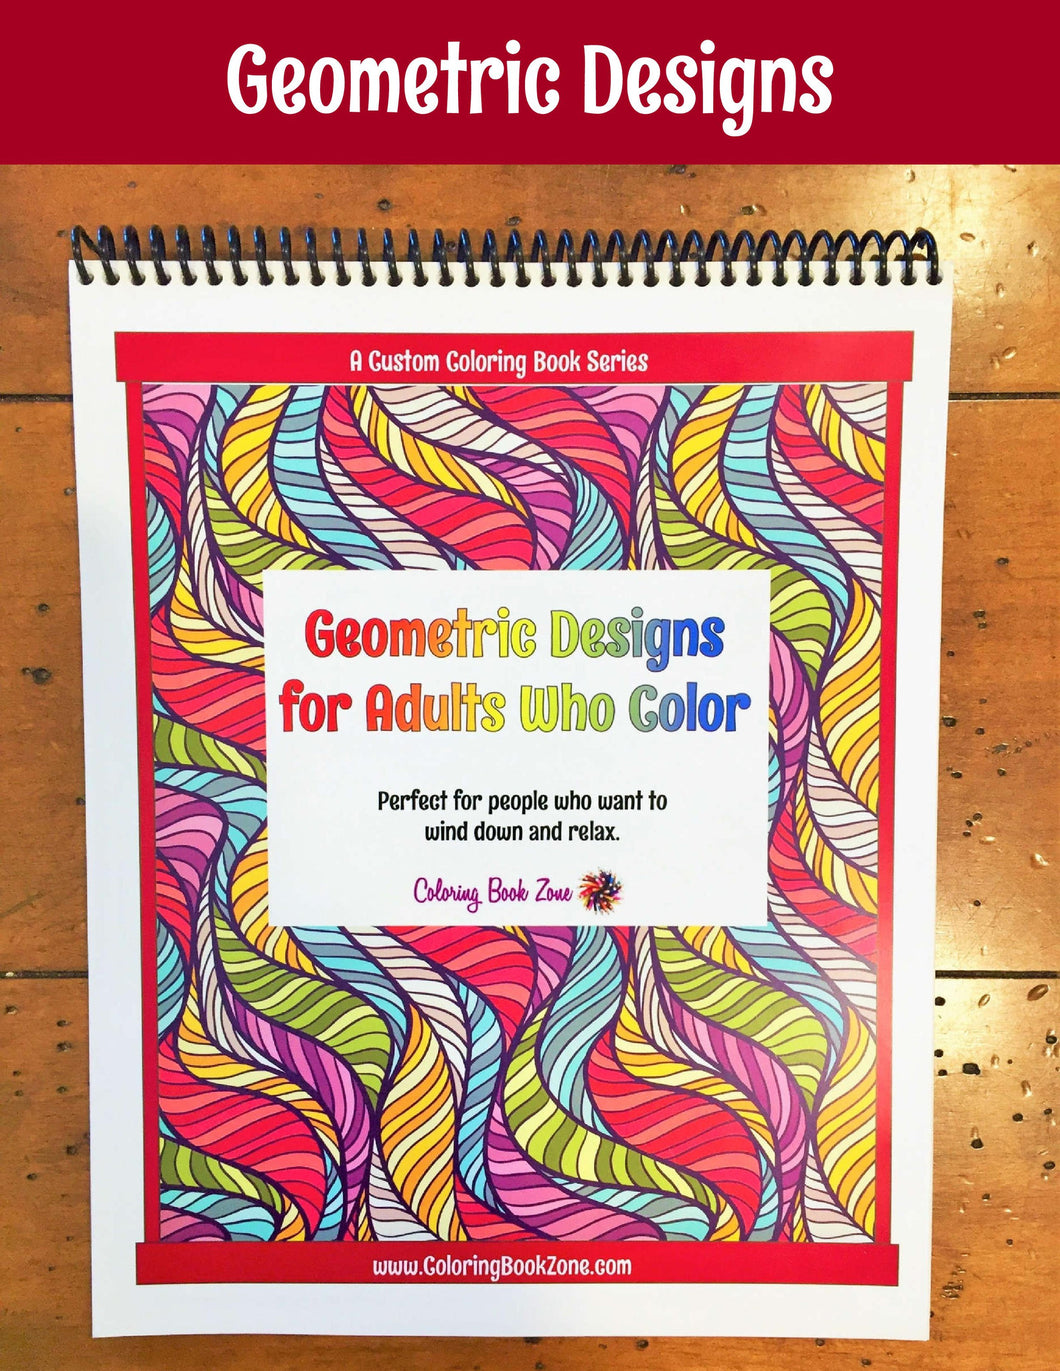 Geometric Designs for Adults Who Color - Live Your Life in Color Series - Coloring Book Zone